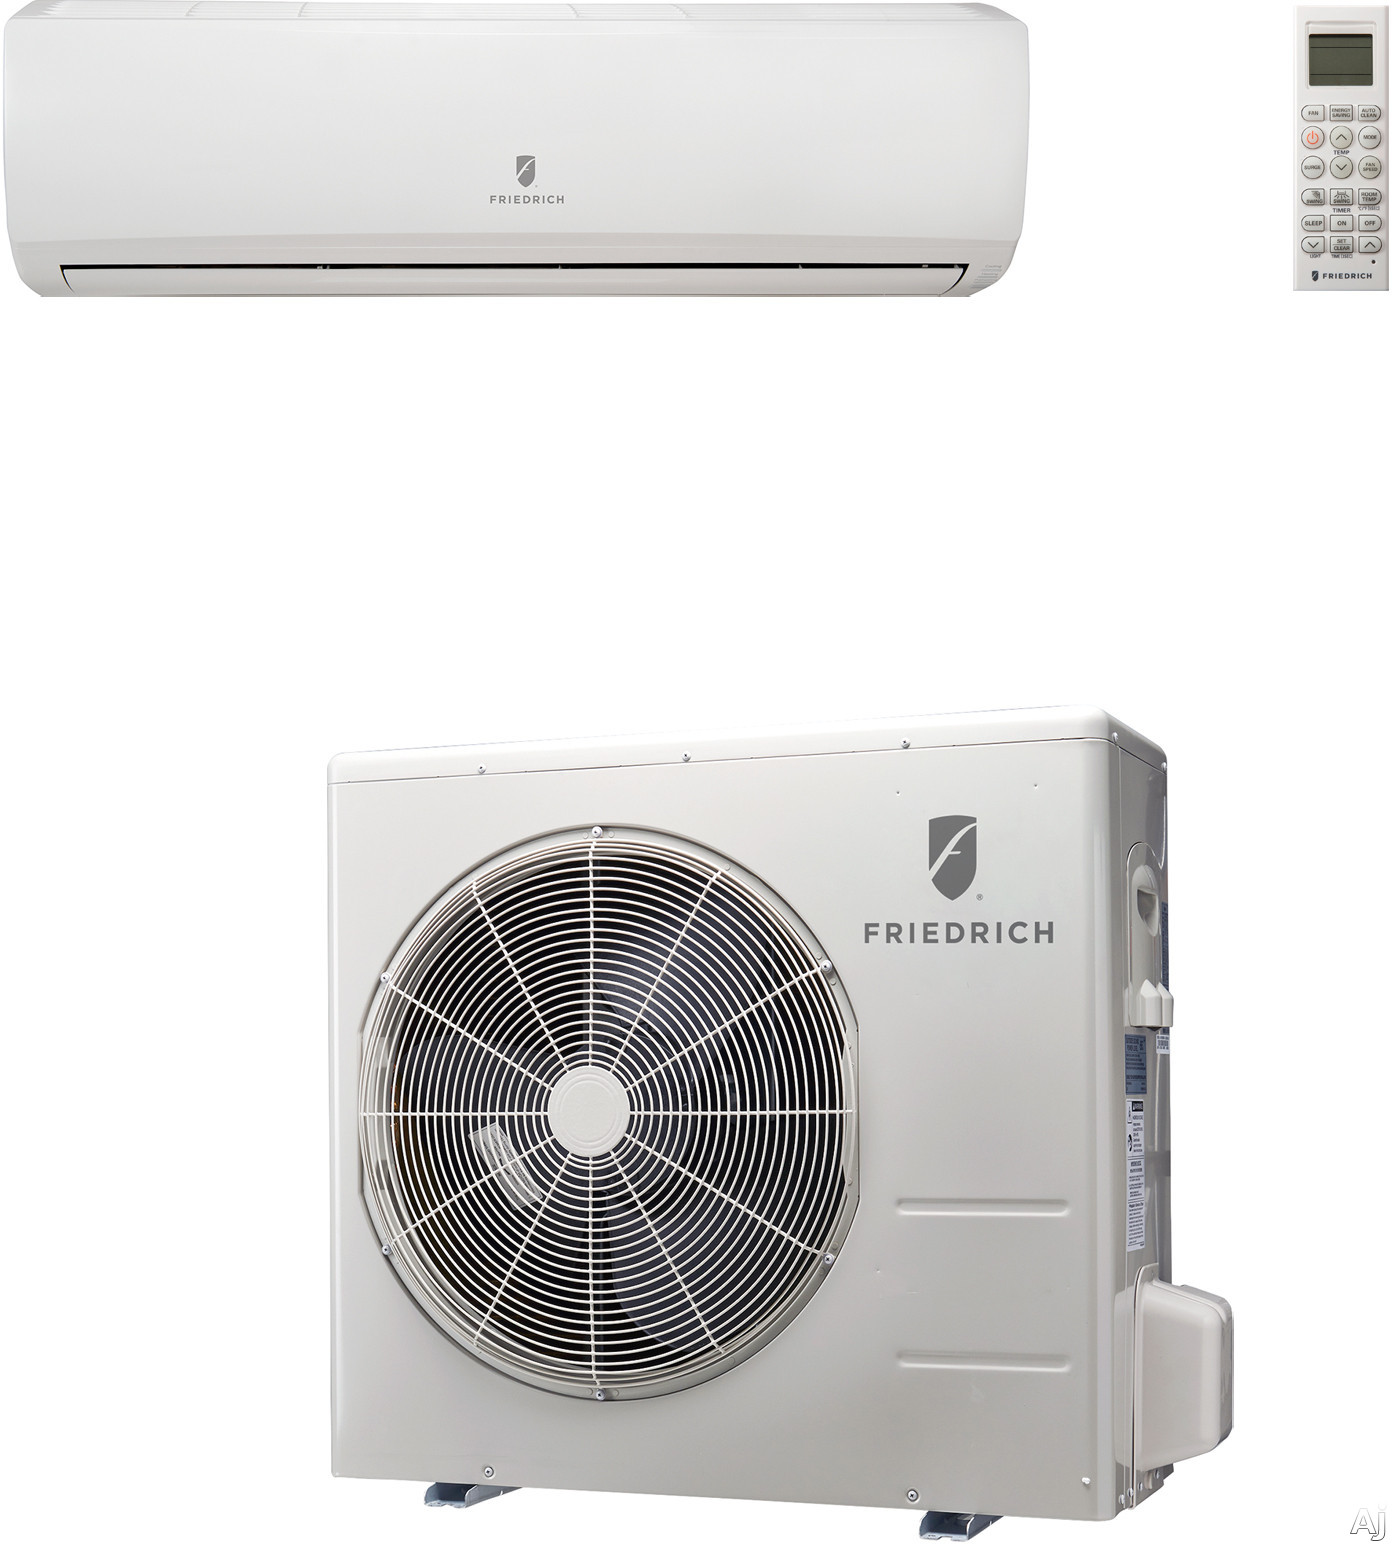 Friedrich M30YJ 30,000 BTU Single Zone Wall-Mount Ductless Split System with 32,000 BTU Heat Pump, 10.0 EER, 18.5 SEER and R410A Refrigerant (MW30Y3J Indoor/MR30Y3J Outdoor) M30YJ